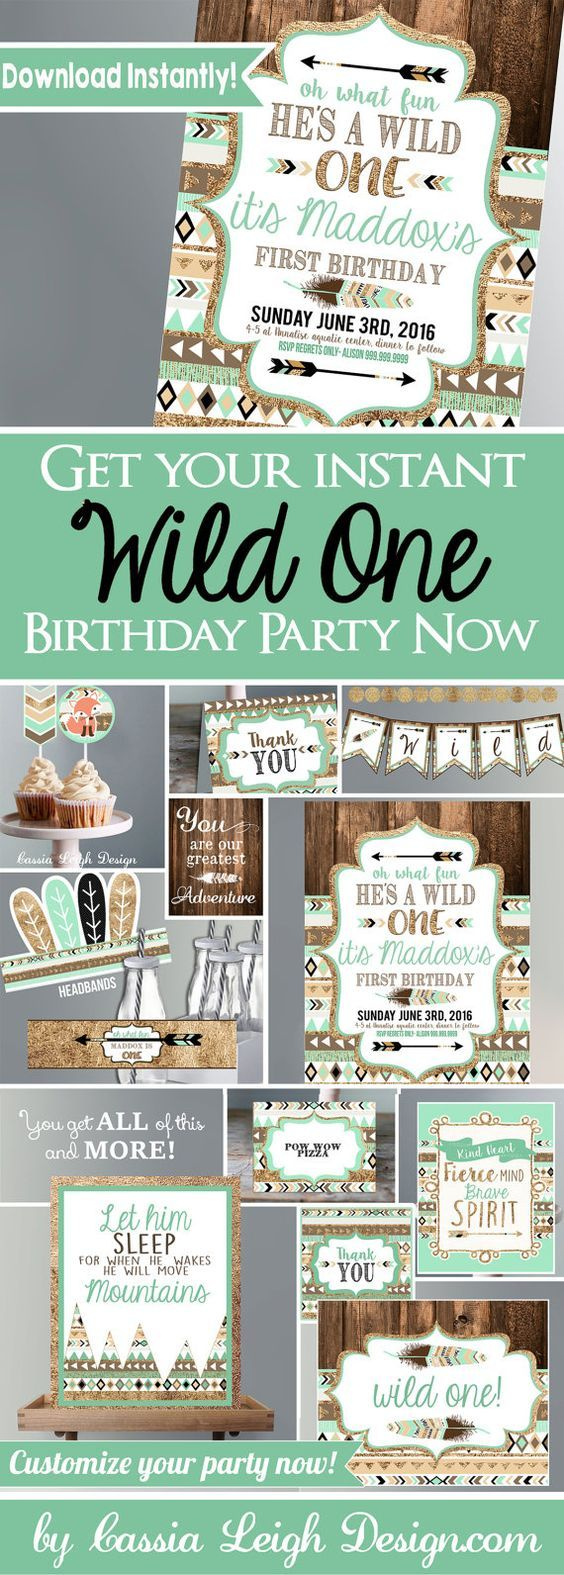 invitation words forst birthday party%0A Wild One Birthday Invitation with Decor  brown mint teal and gold   Tribal  First Birthday Party  BOY  Printable Invite and Decor